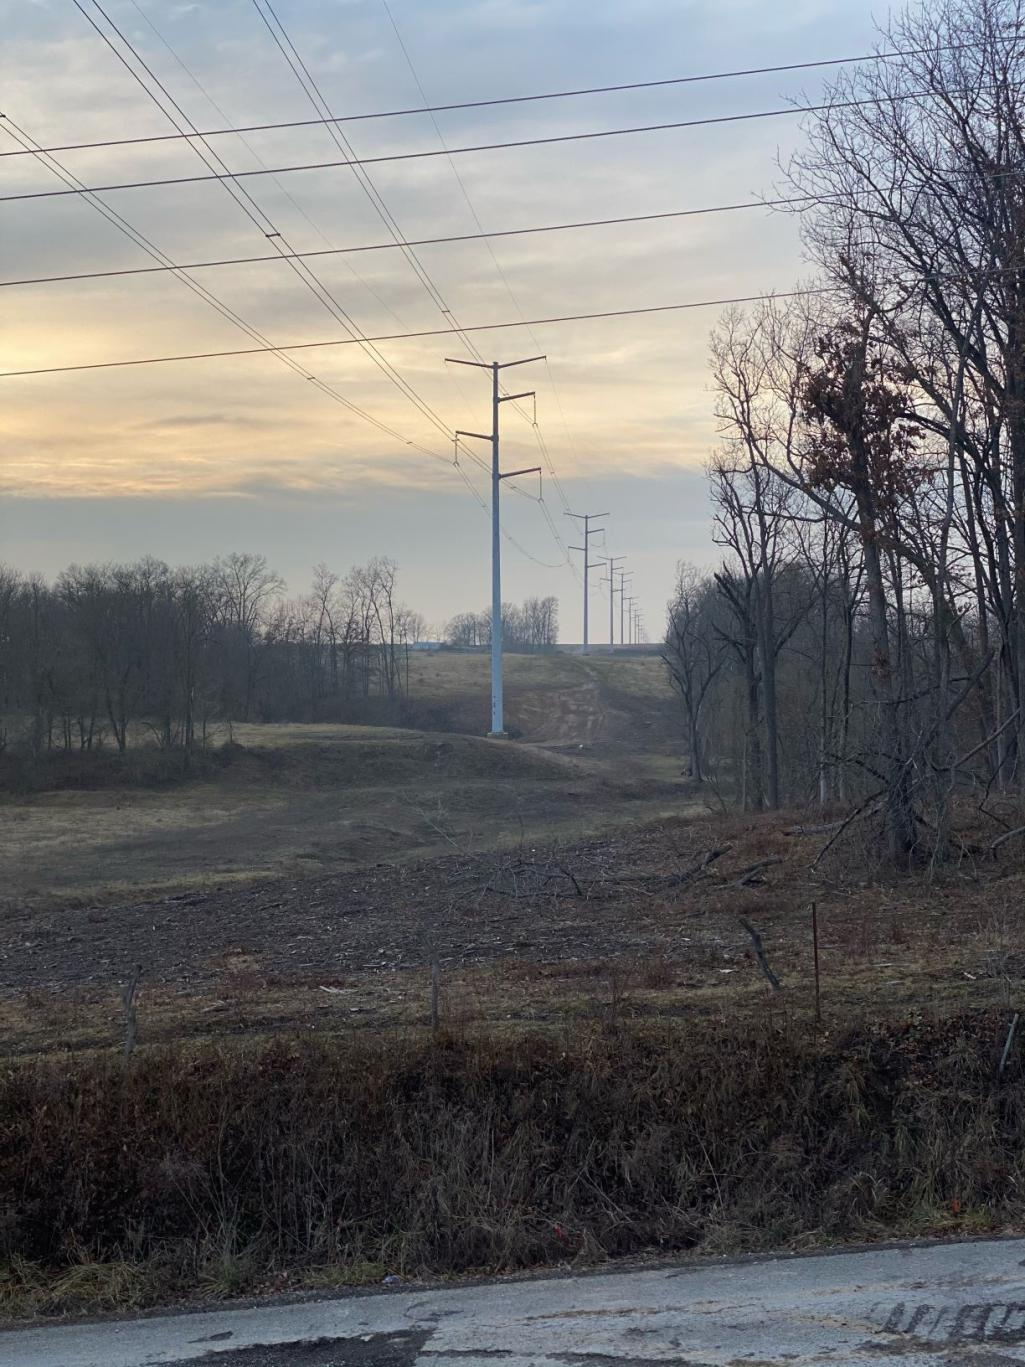 Monopole transmission towers along the Illinois Rivers Project | Photo courtesy of Ameren